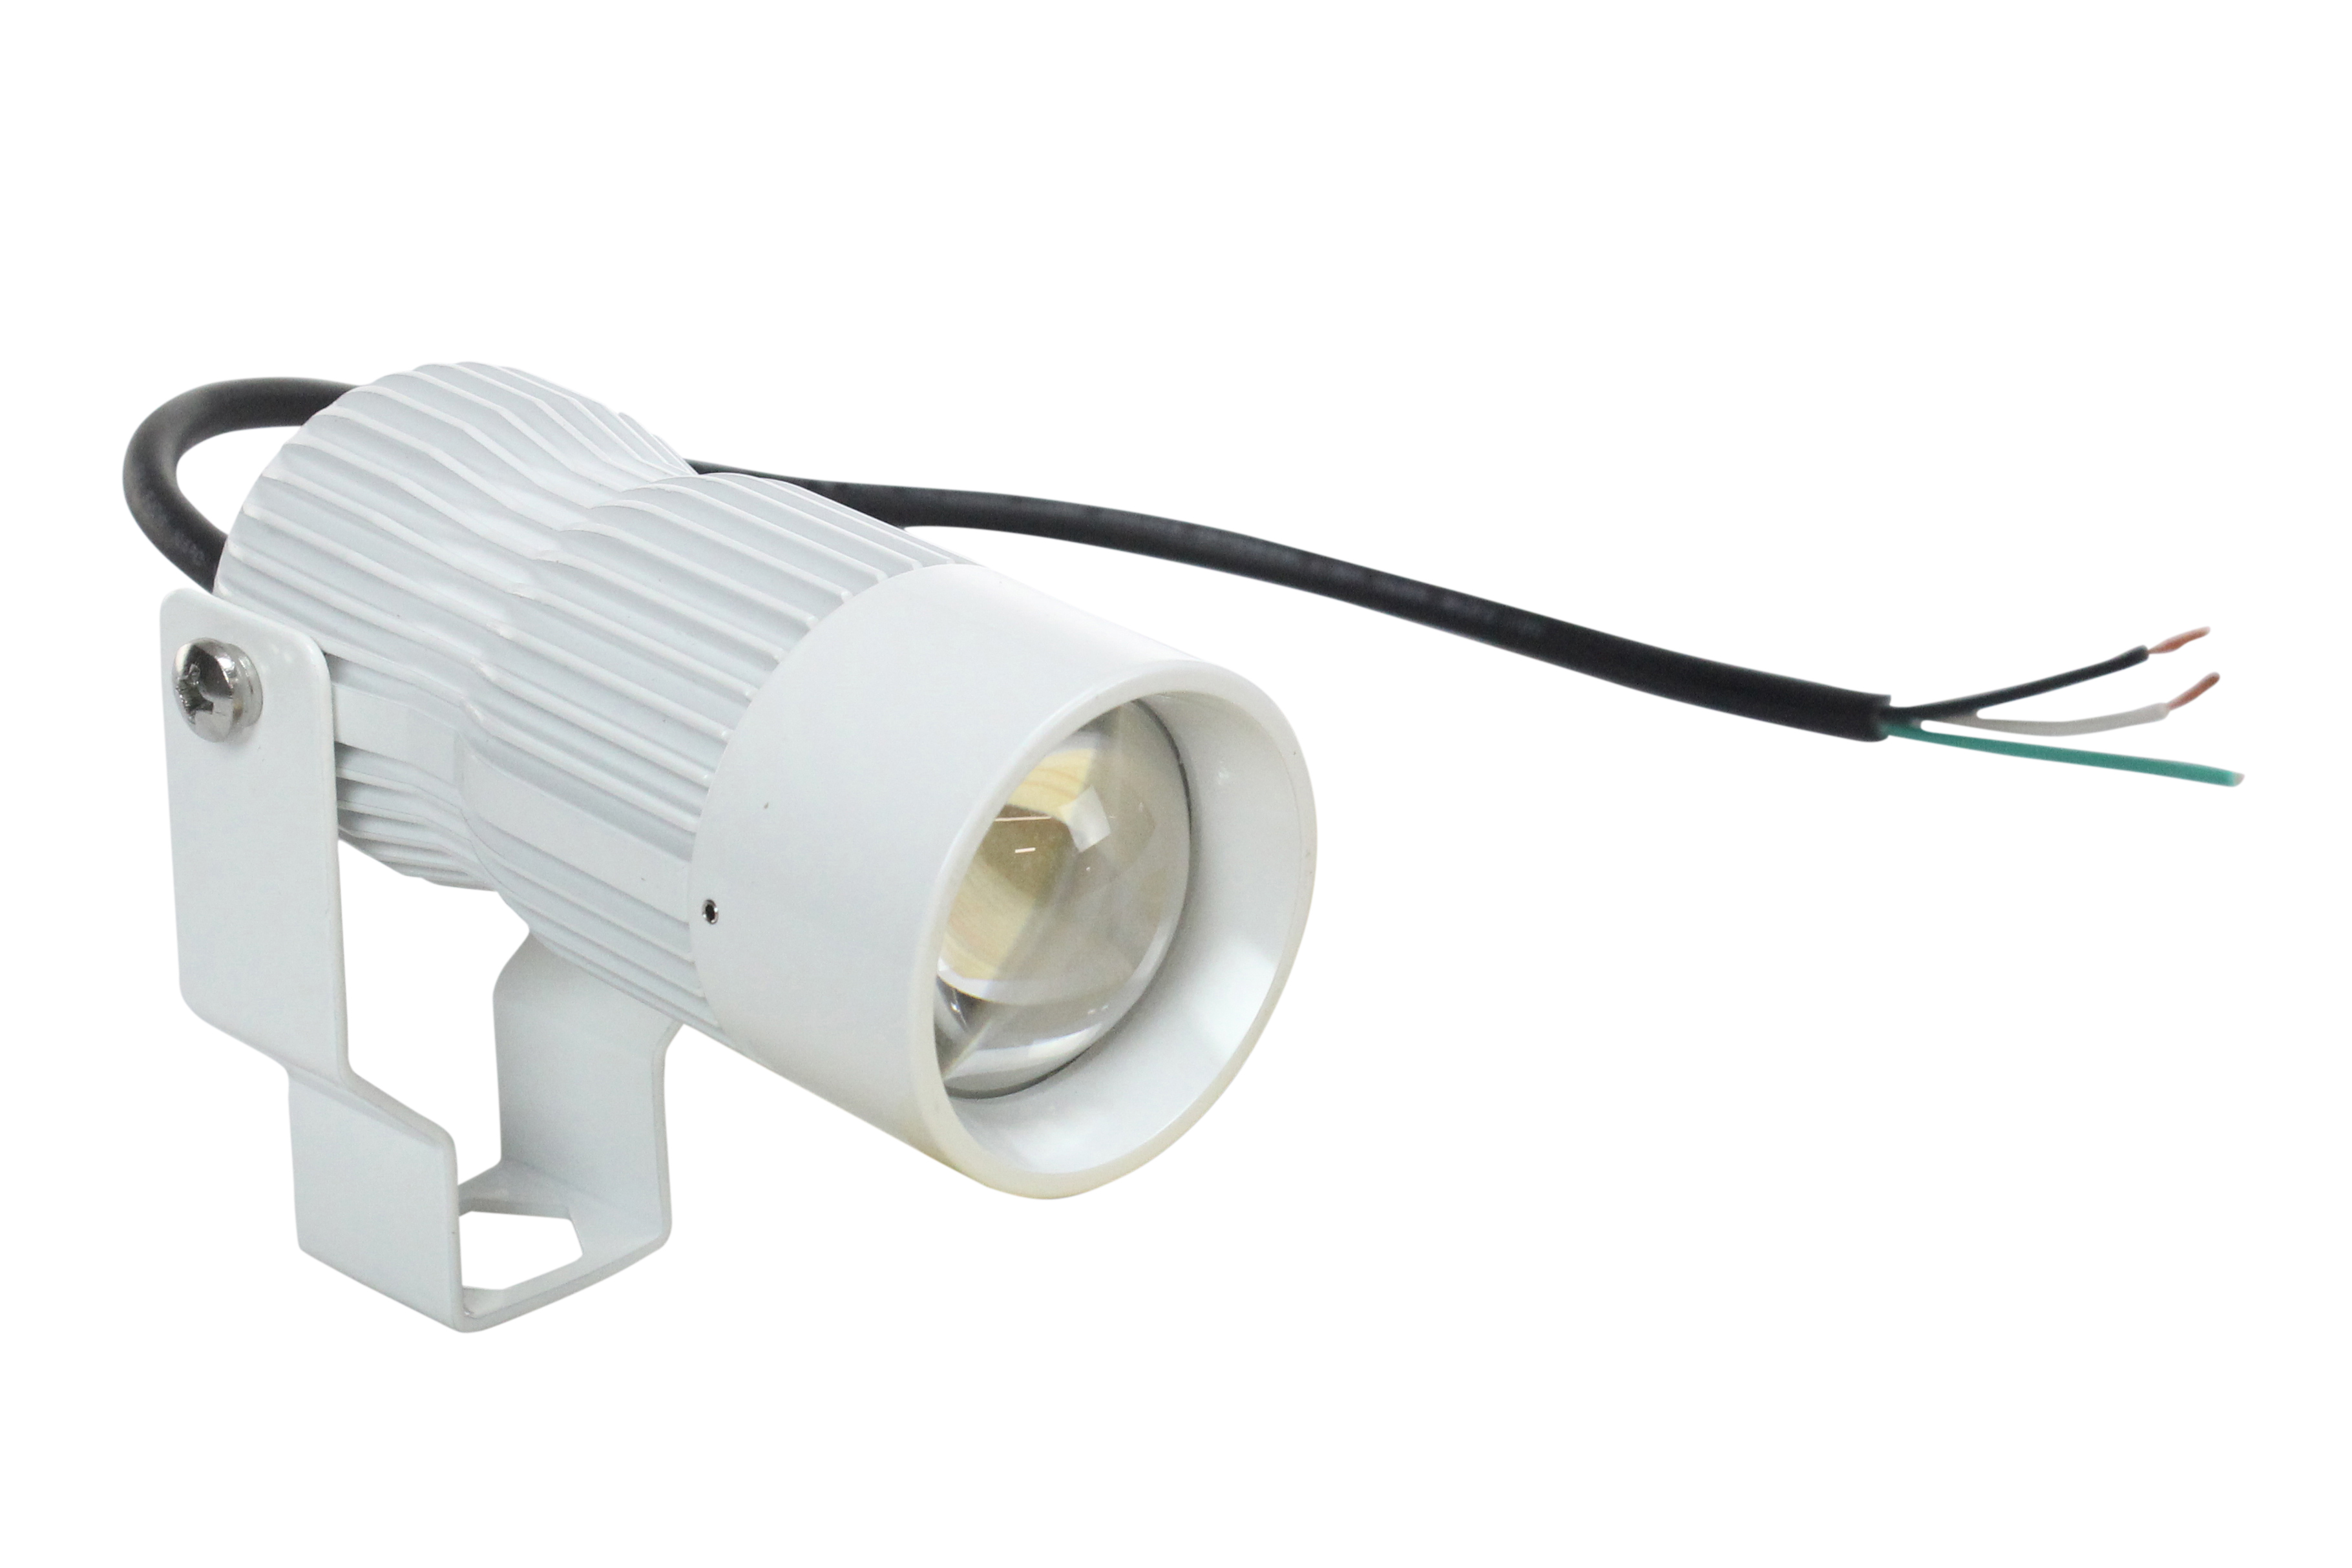 Releases New 18 Watt Led Light Fixture For Industrial Applications